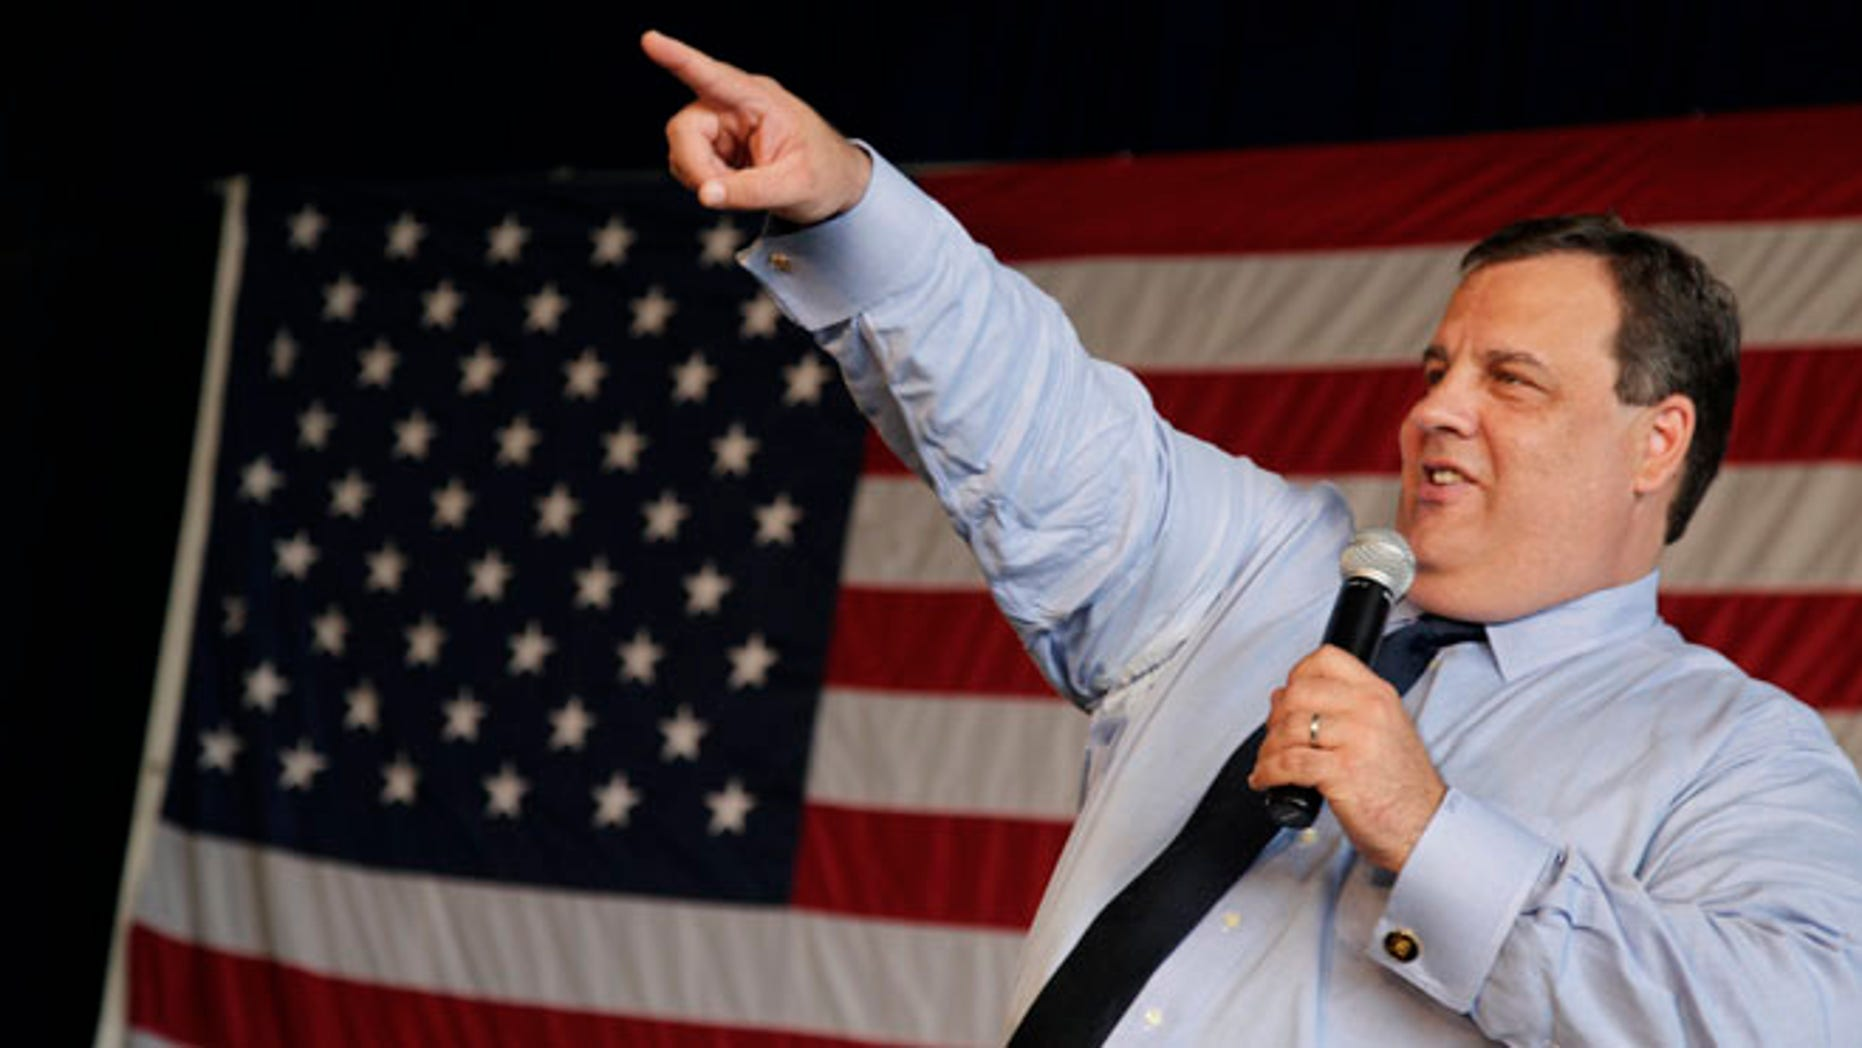 May 16, 2012: New Jersey Gov. Chris Christie jokes during a large town hall gathering in East Hanover, N.J.